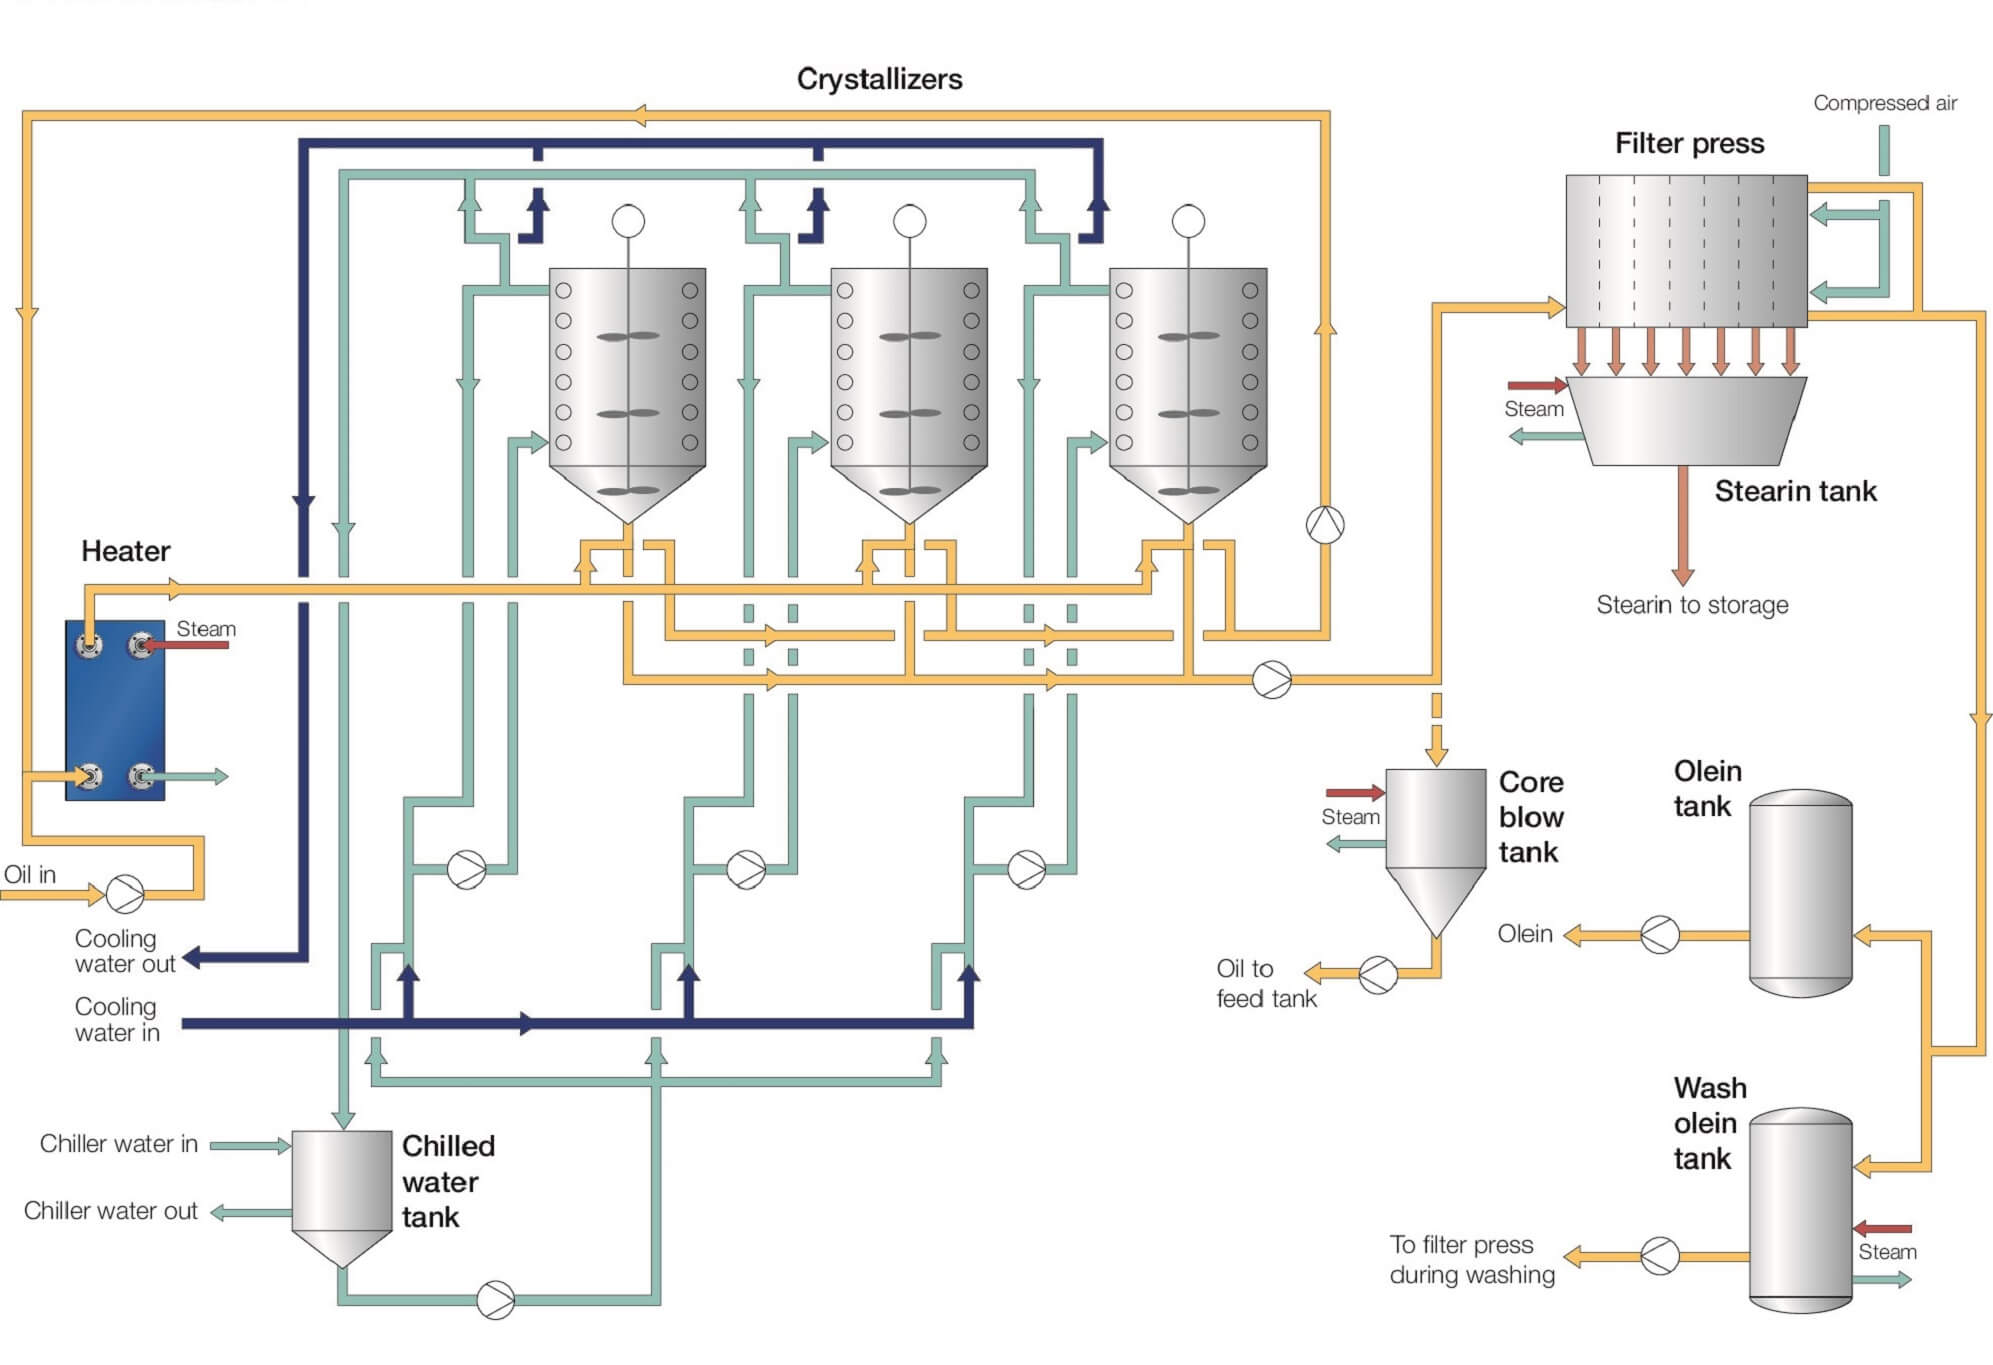 fractionation process flow diagram.jpg